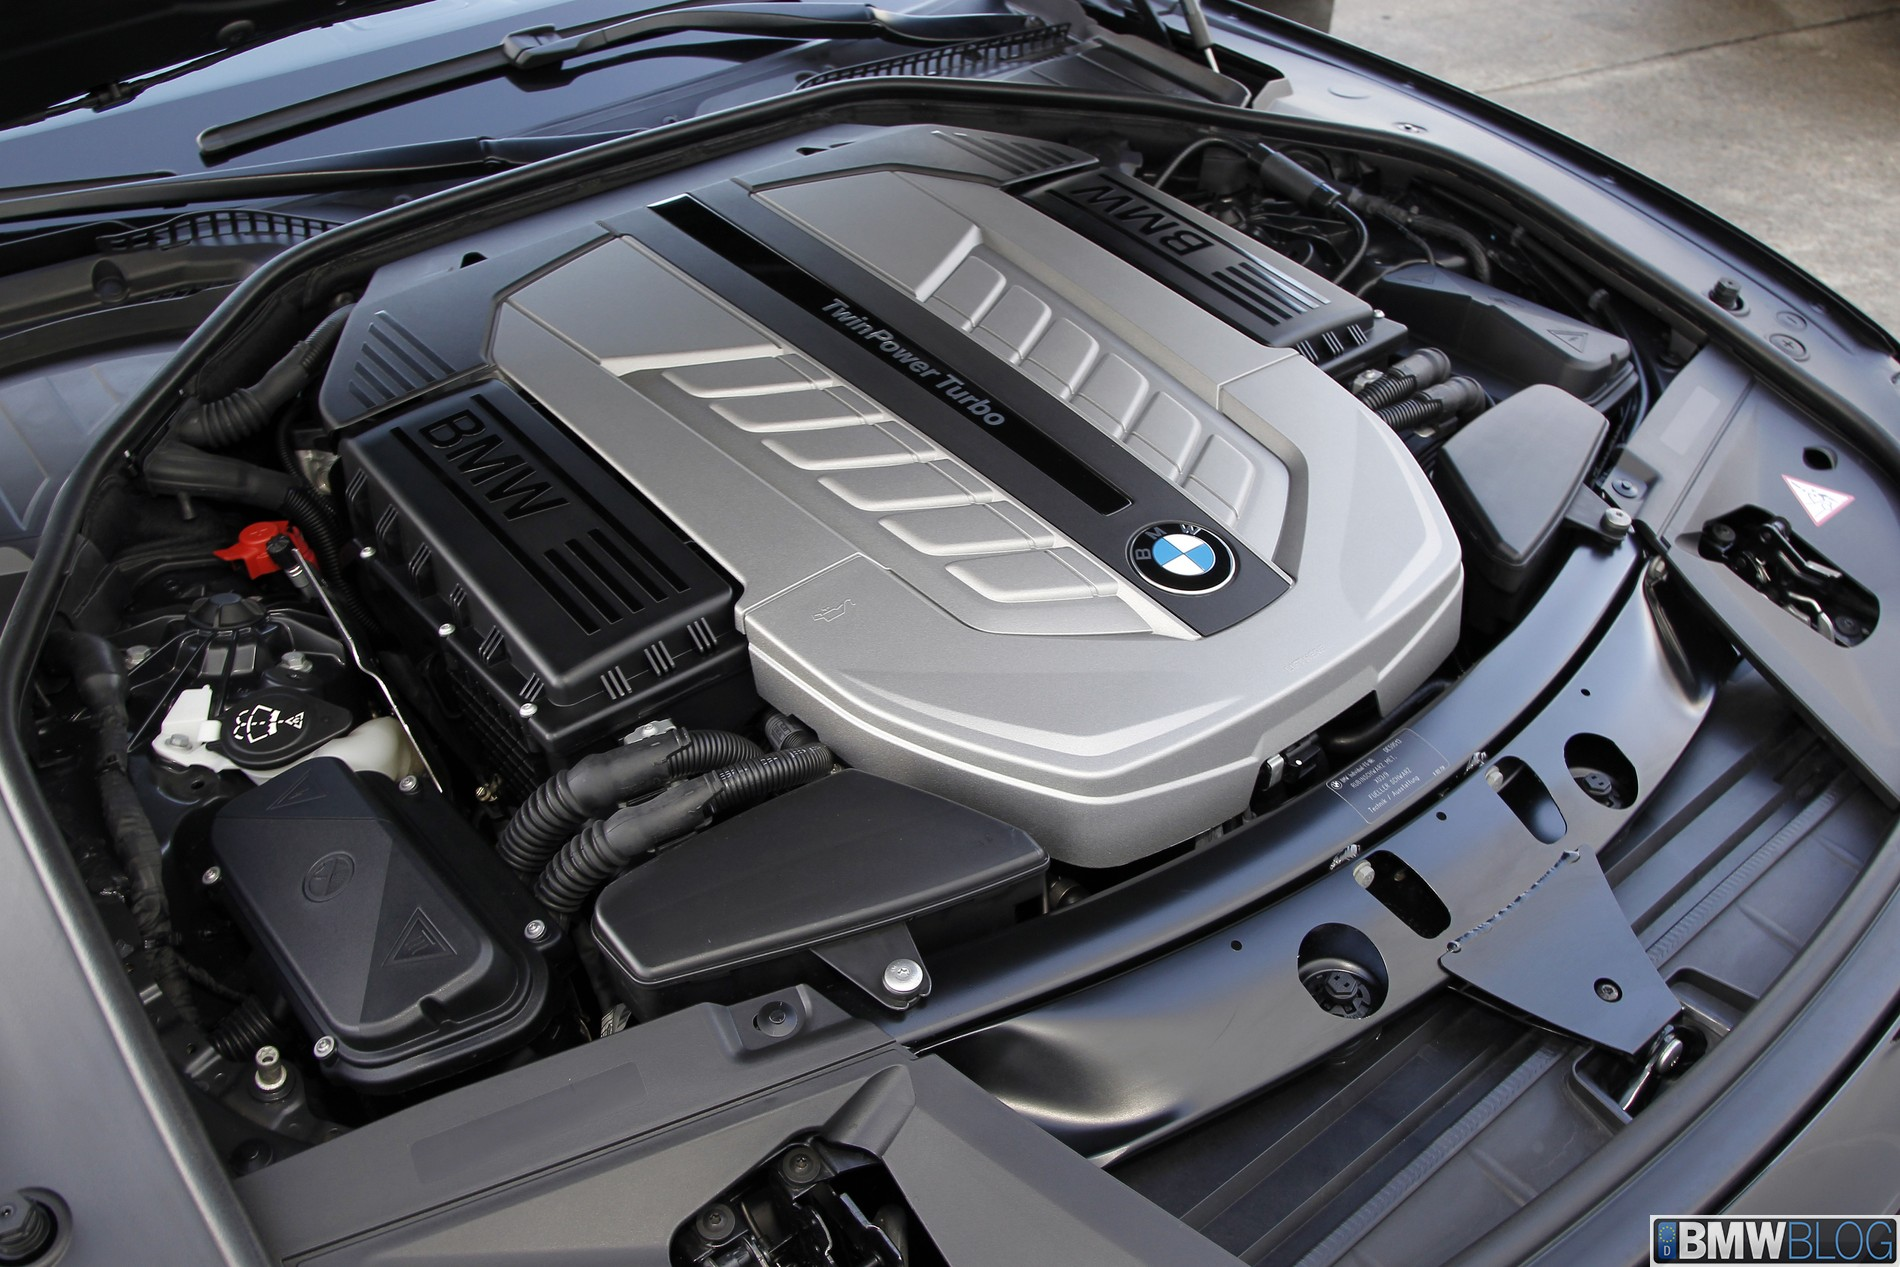 25 Years Of Bmw 12 Cylinder Engines